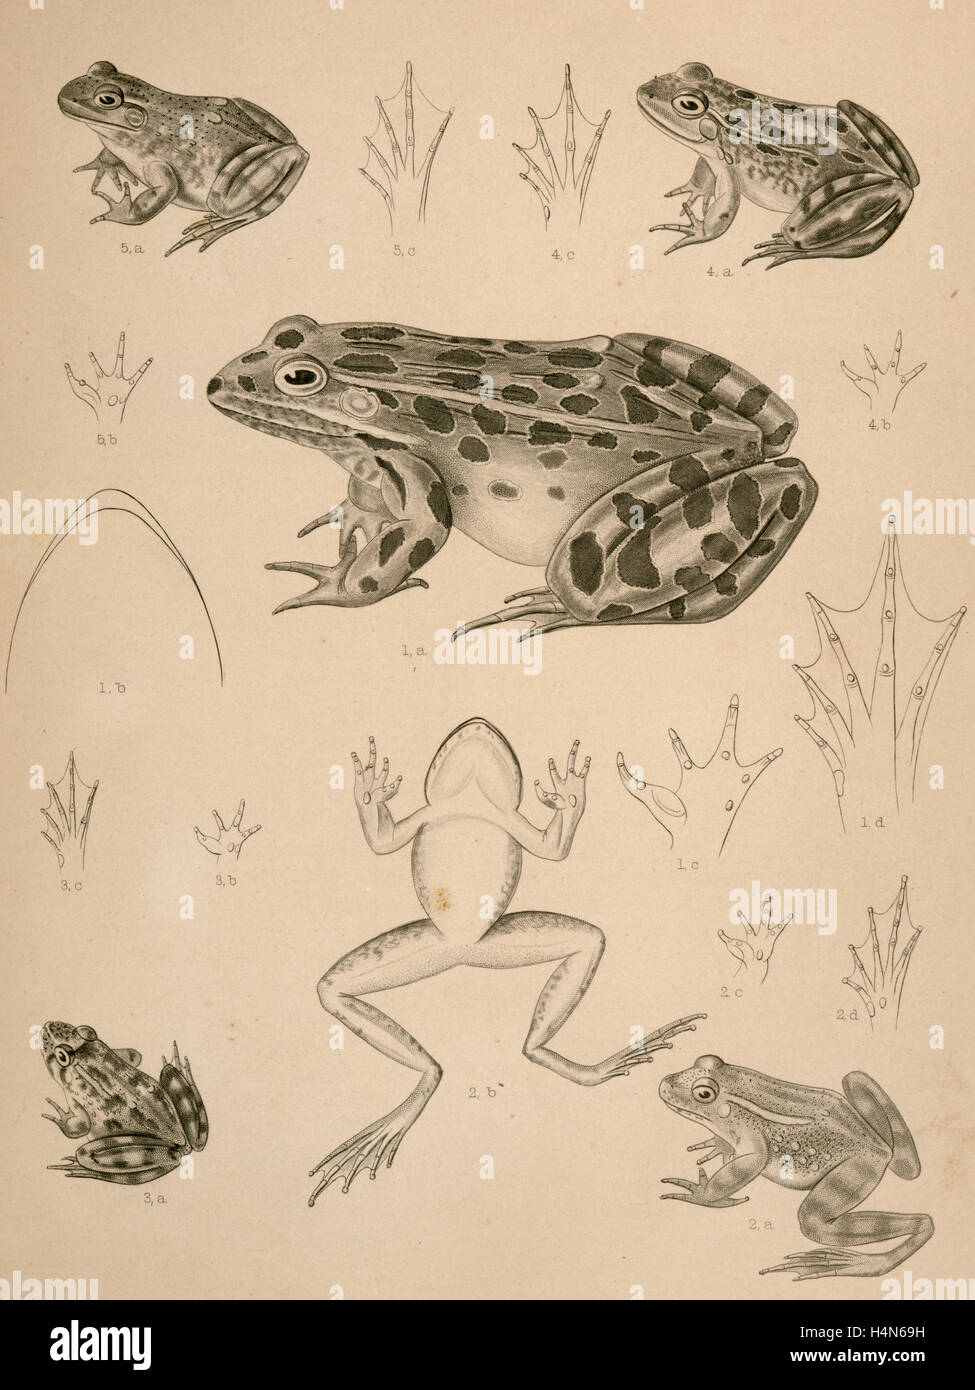 1. Pana halecina, Spotted Frog, b. under surface of head, c. under surface of left fore foot - Stock Image